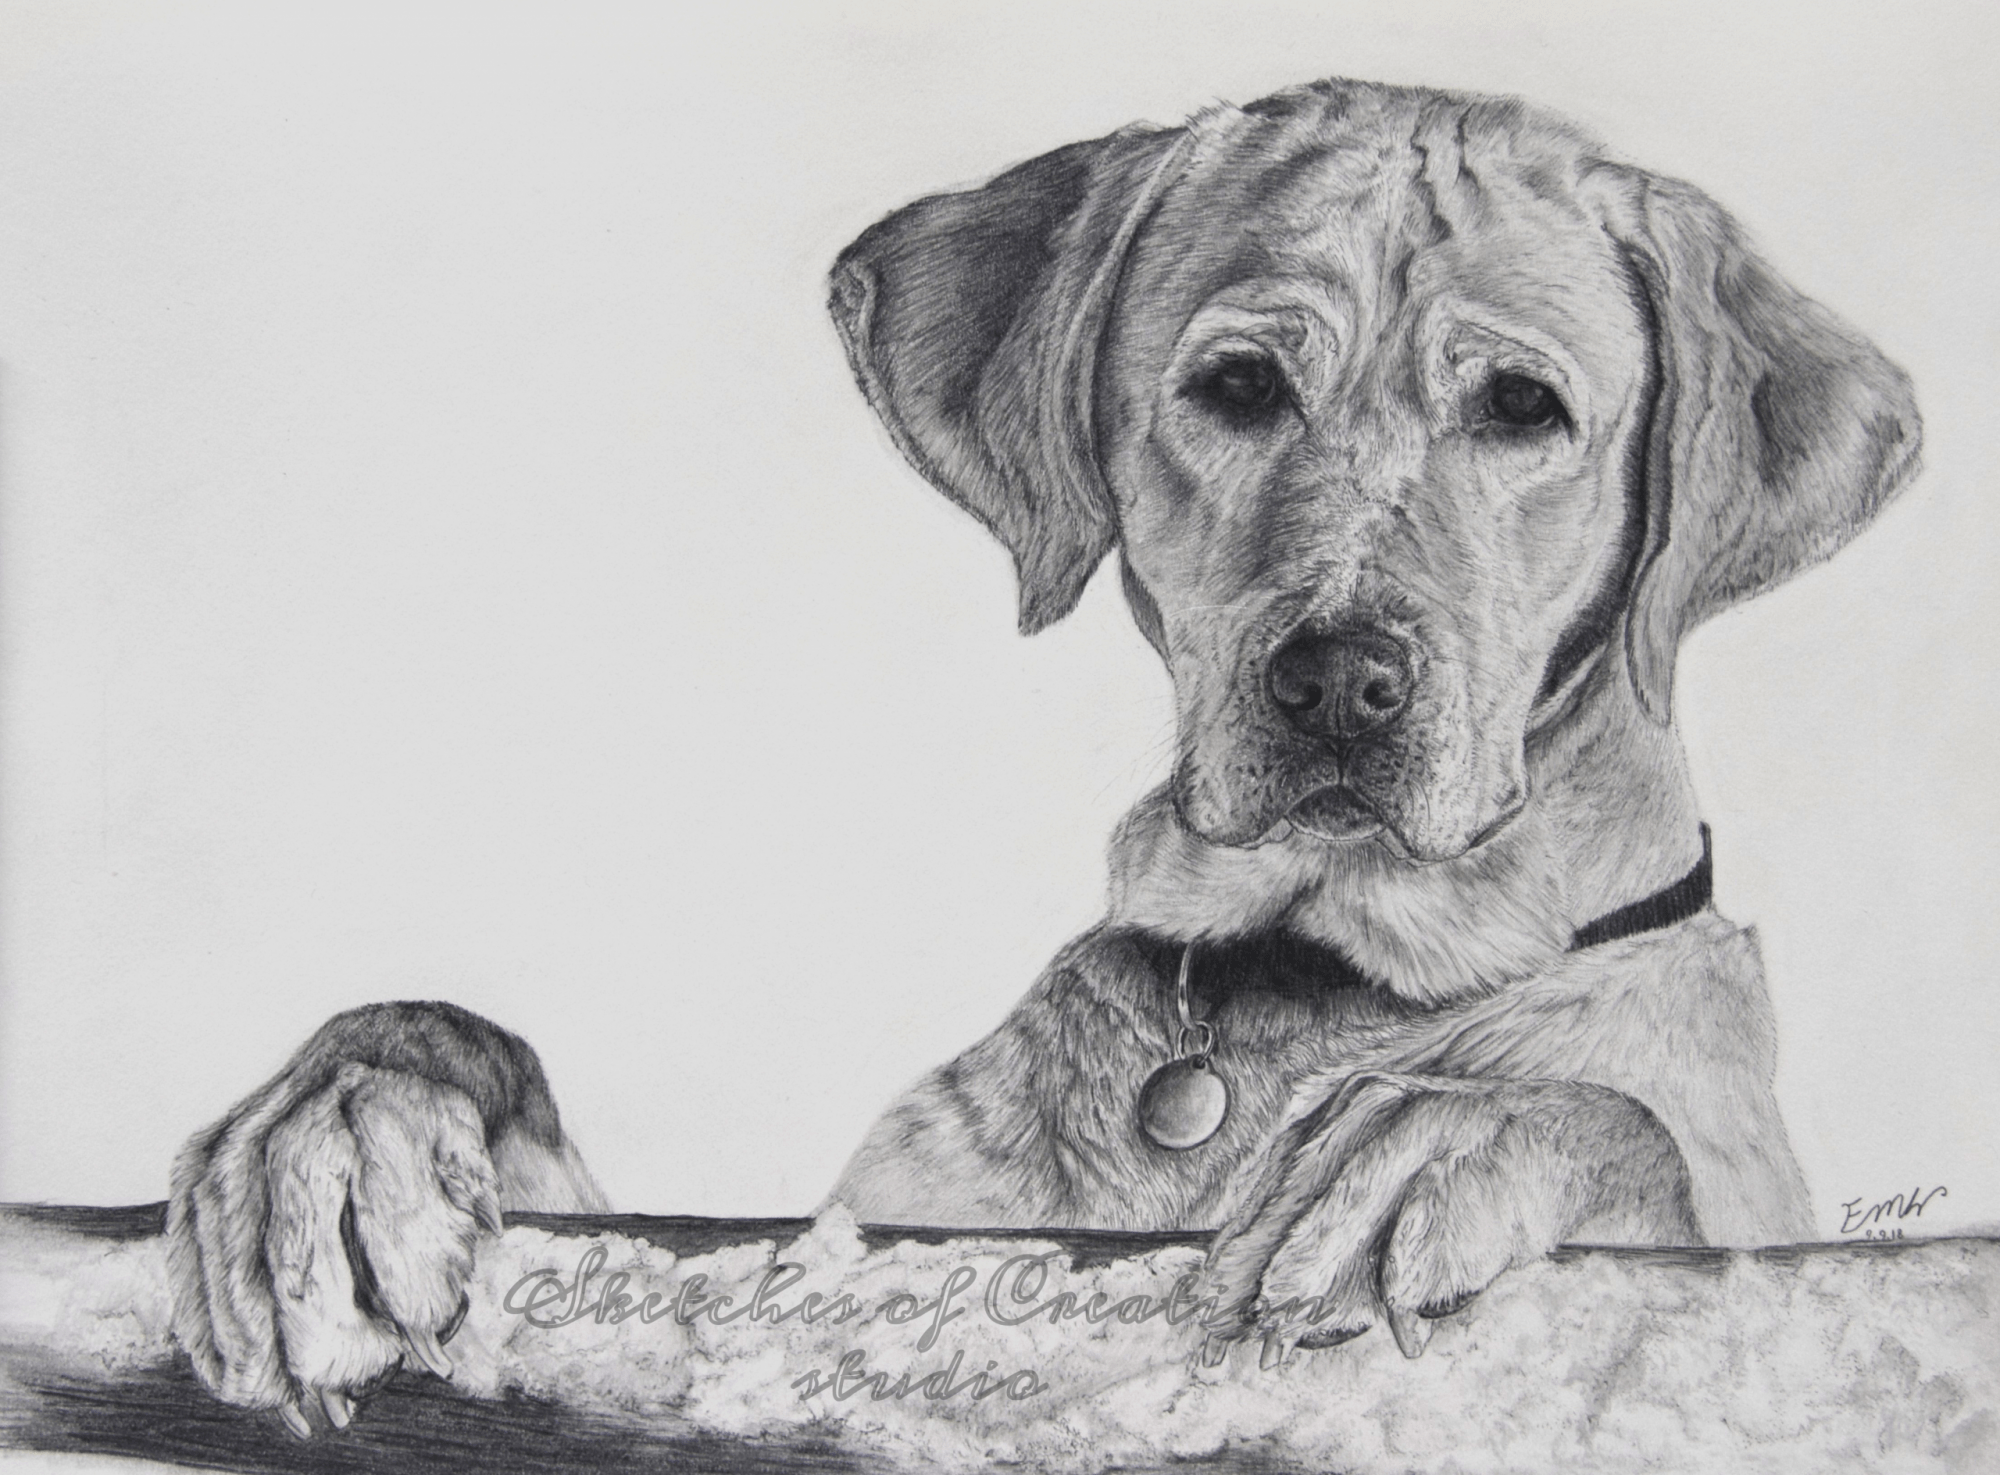 'Eric' a drawing of a yellow Labrador. 9x12 inches. Completed September 2018